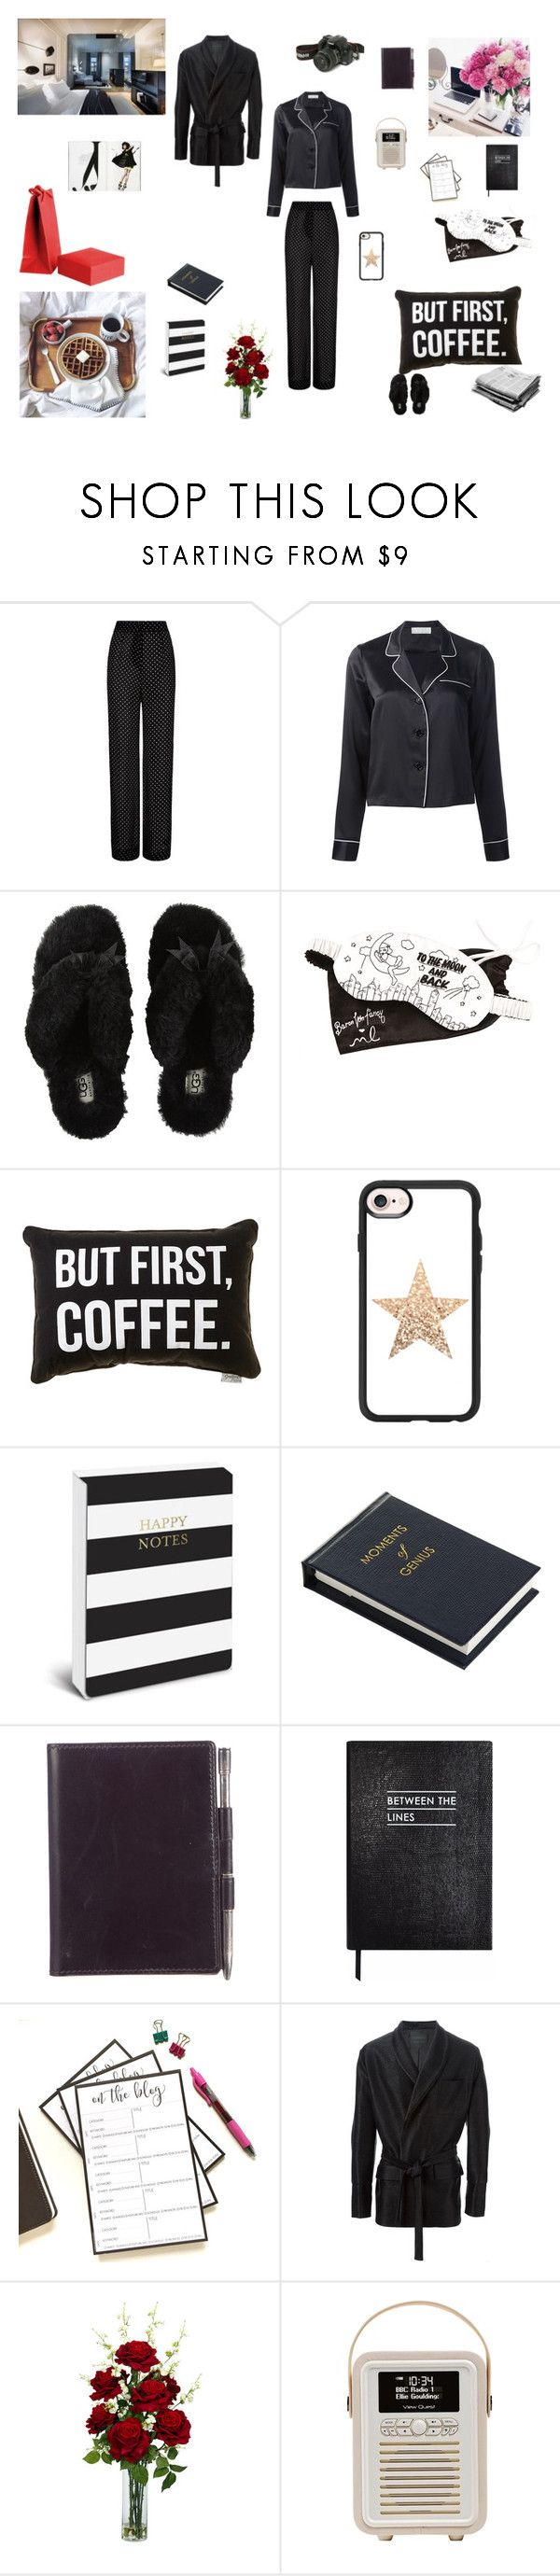 """""""hotel room"""" by favos ❤ liked on Polyvore featuring Agent Provocateur, Fleur du Mal, UGG Australia, Morgan Lane, Casetify, Sloane Stationery, Hermès, La Perla and Nearly Natural"""